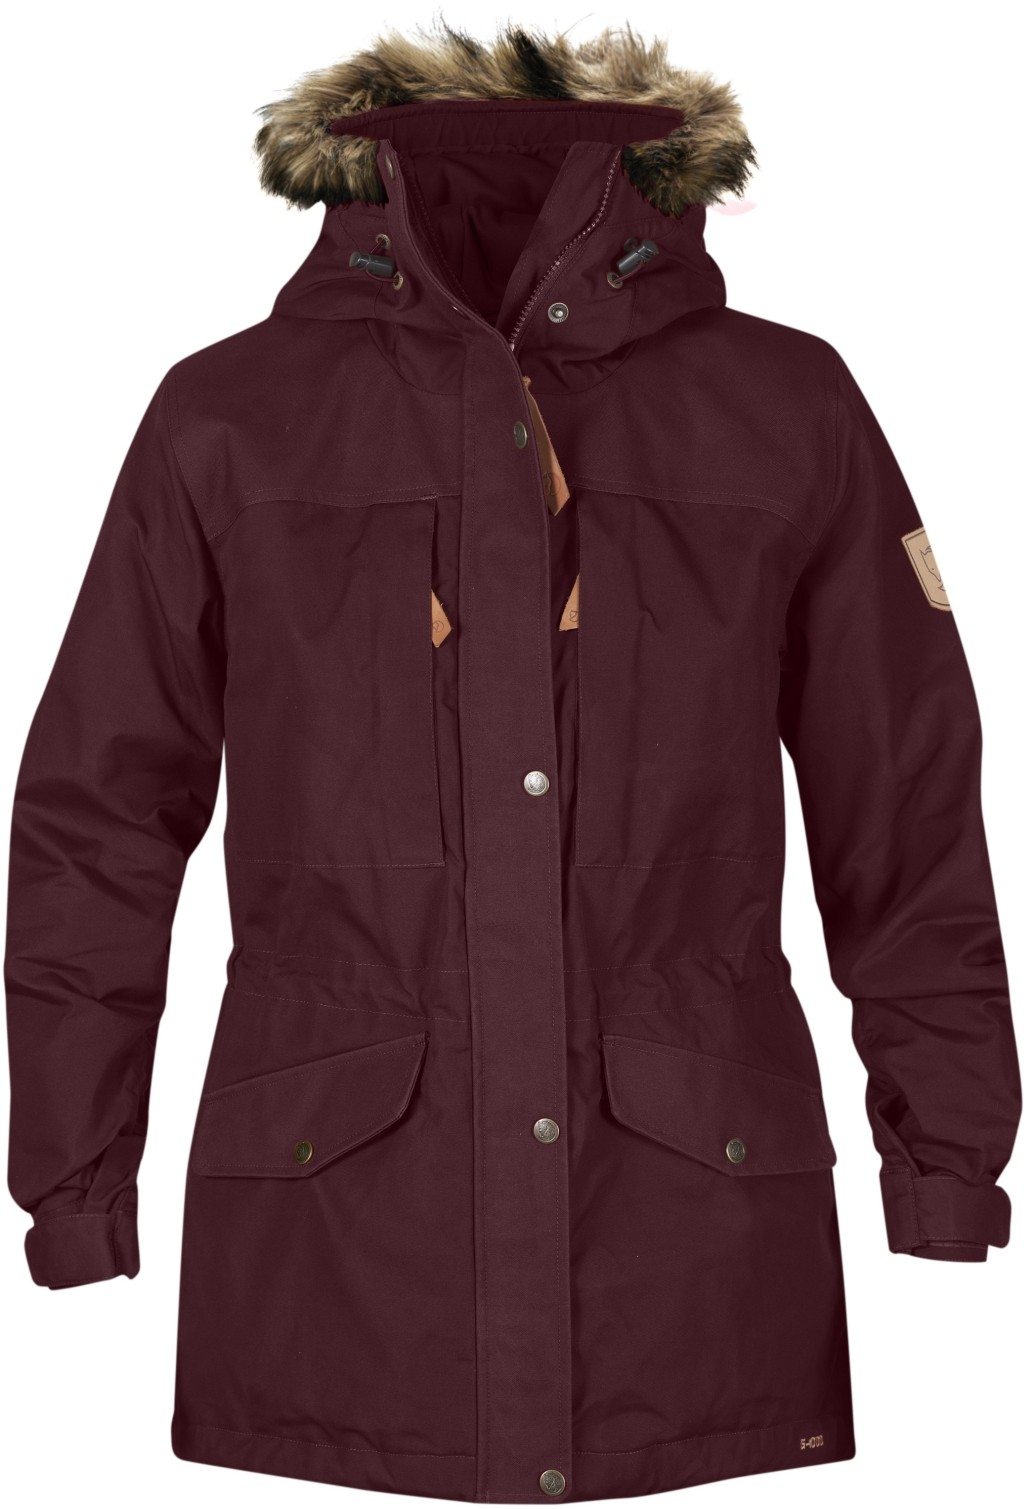 FjallRaven Singi Winter Jacket W.